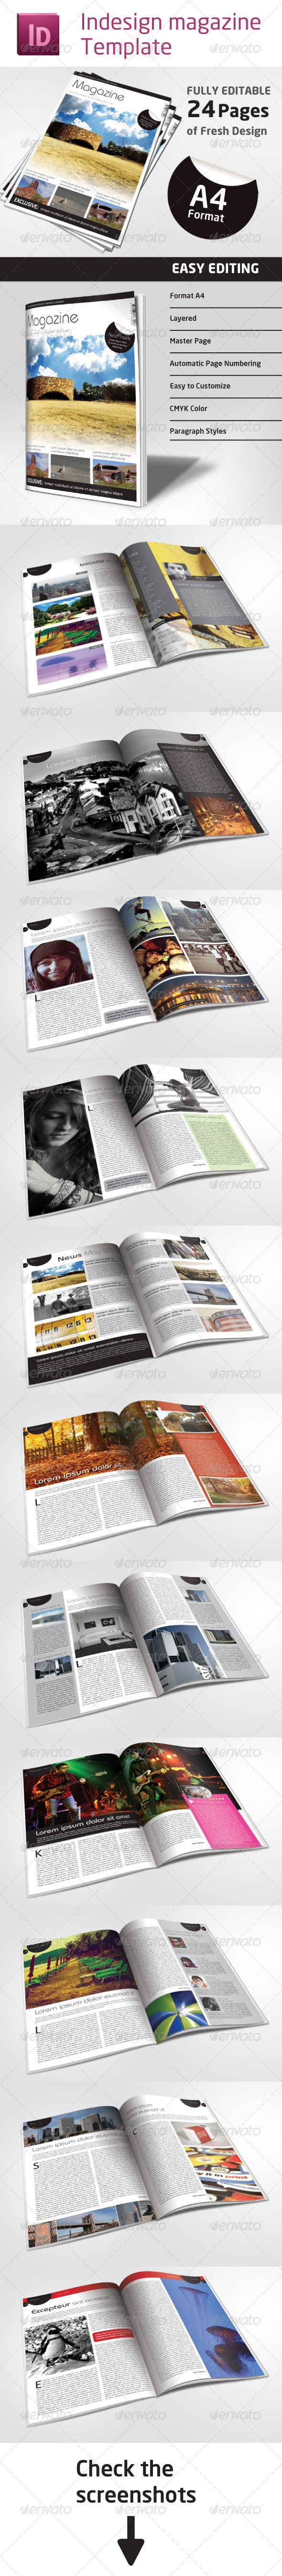 24 Pages Magazine Template in A4 Format - GraphicRiver Item for Sale